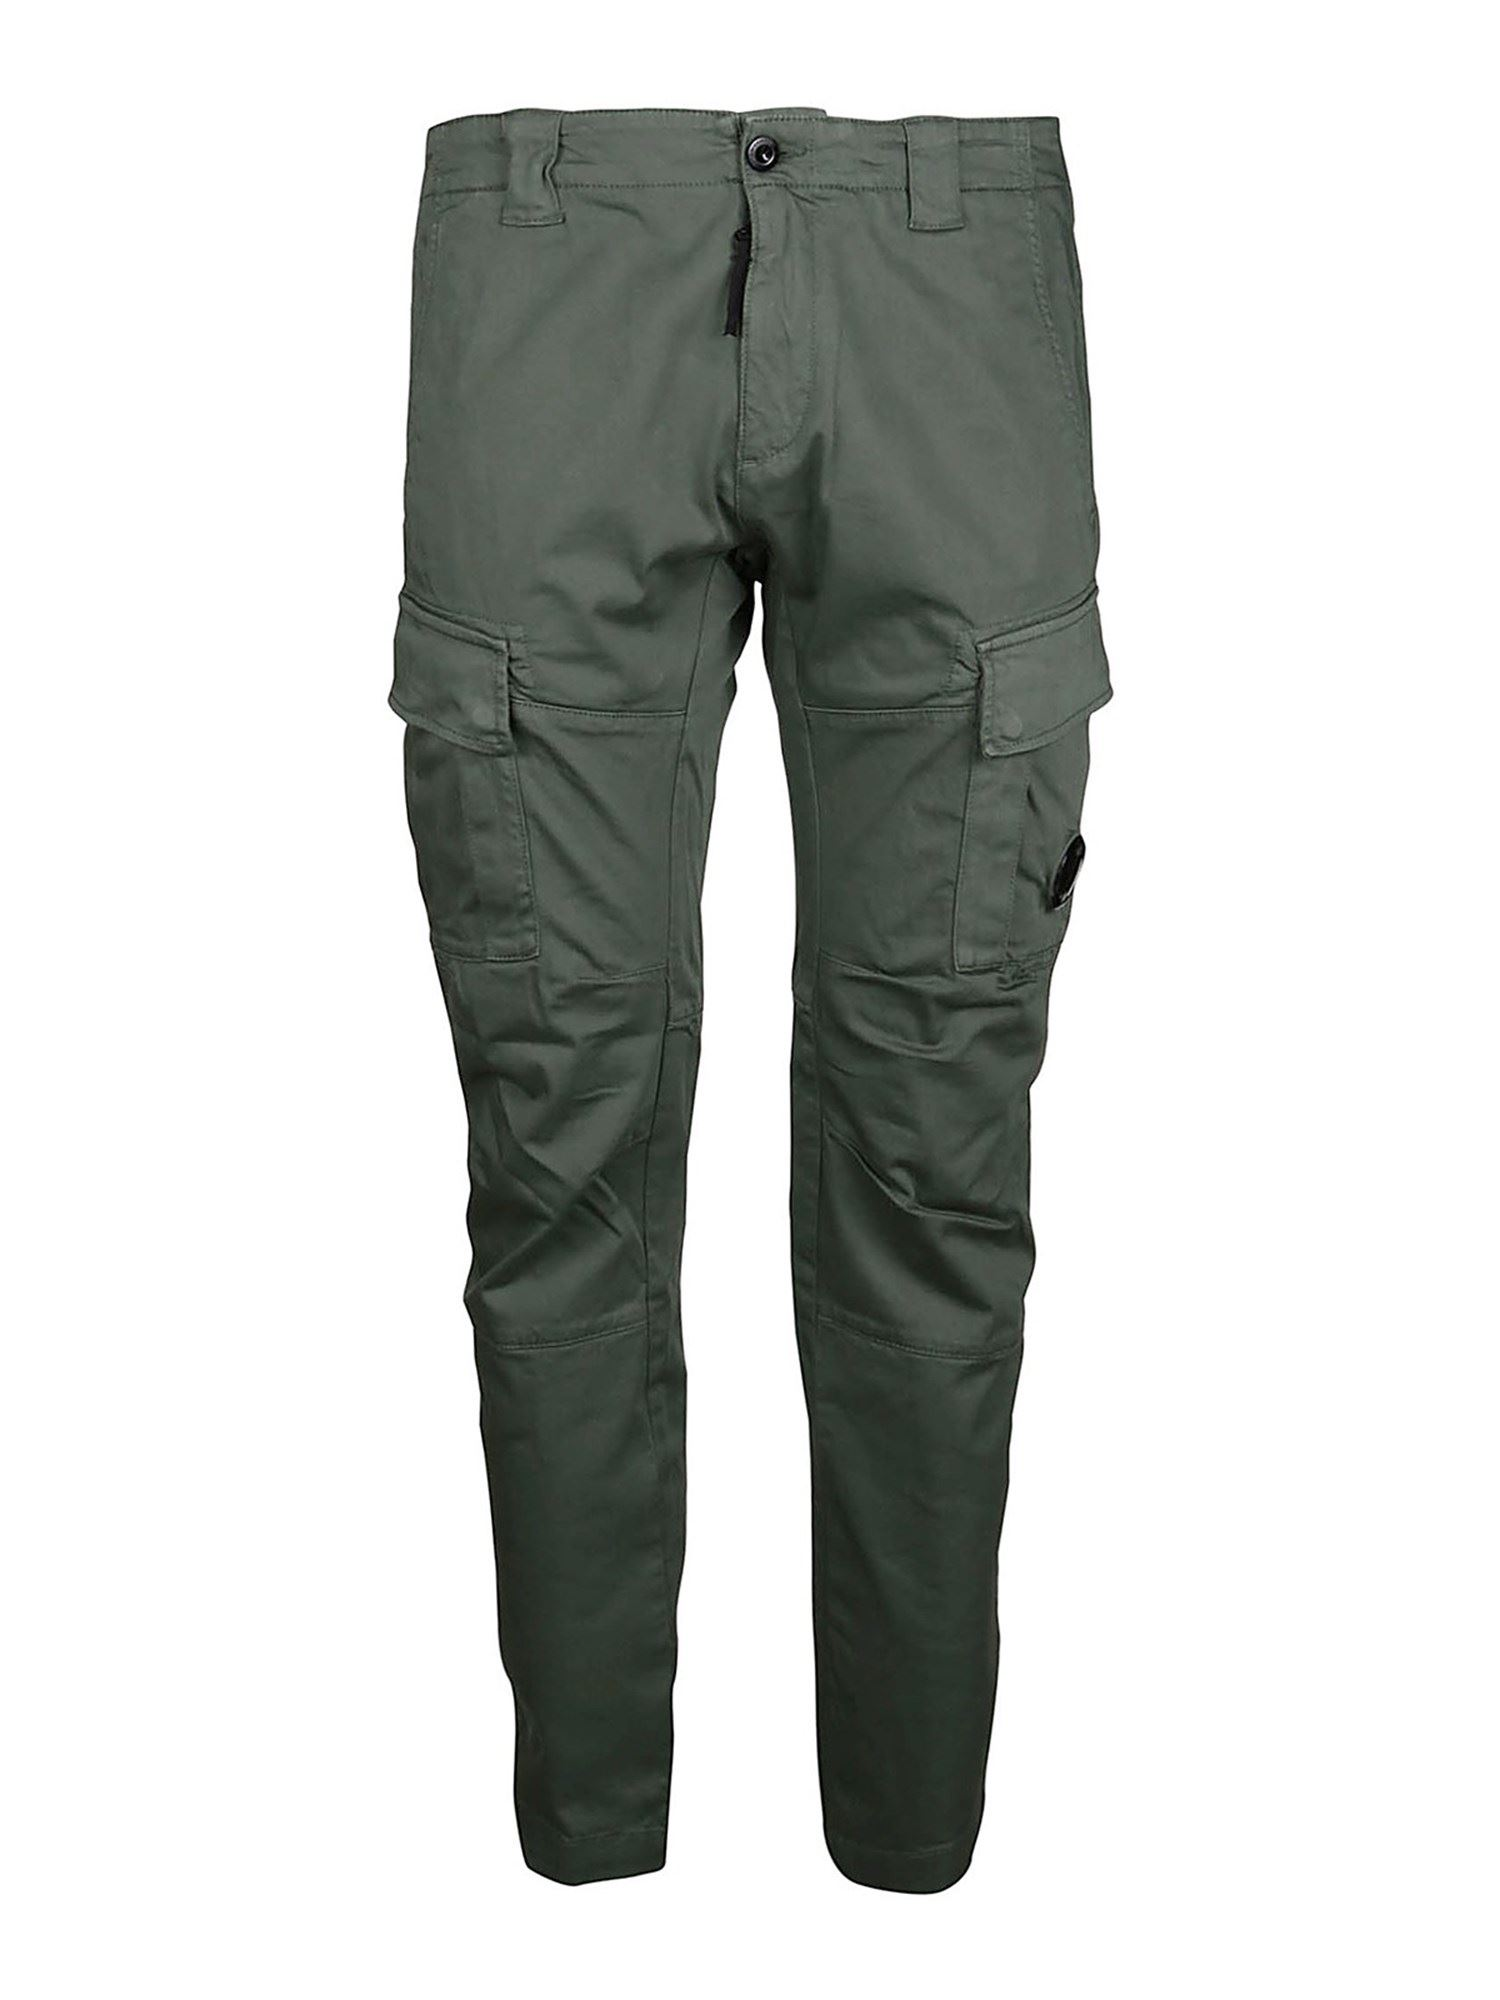 C.p. Company Cottons STRETCH COTTON CARGO PANTS IN ARMY GREEN